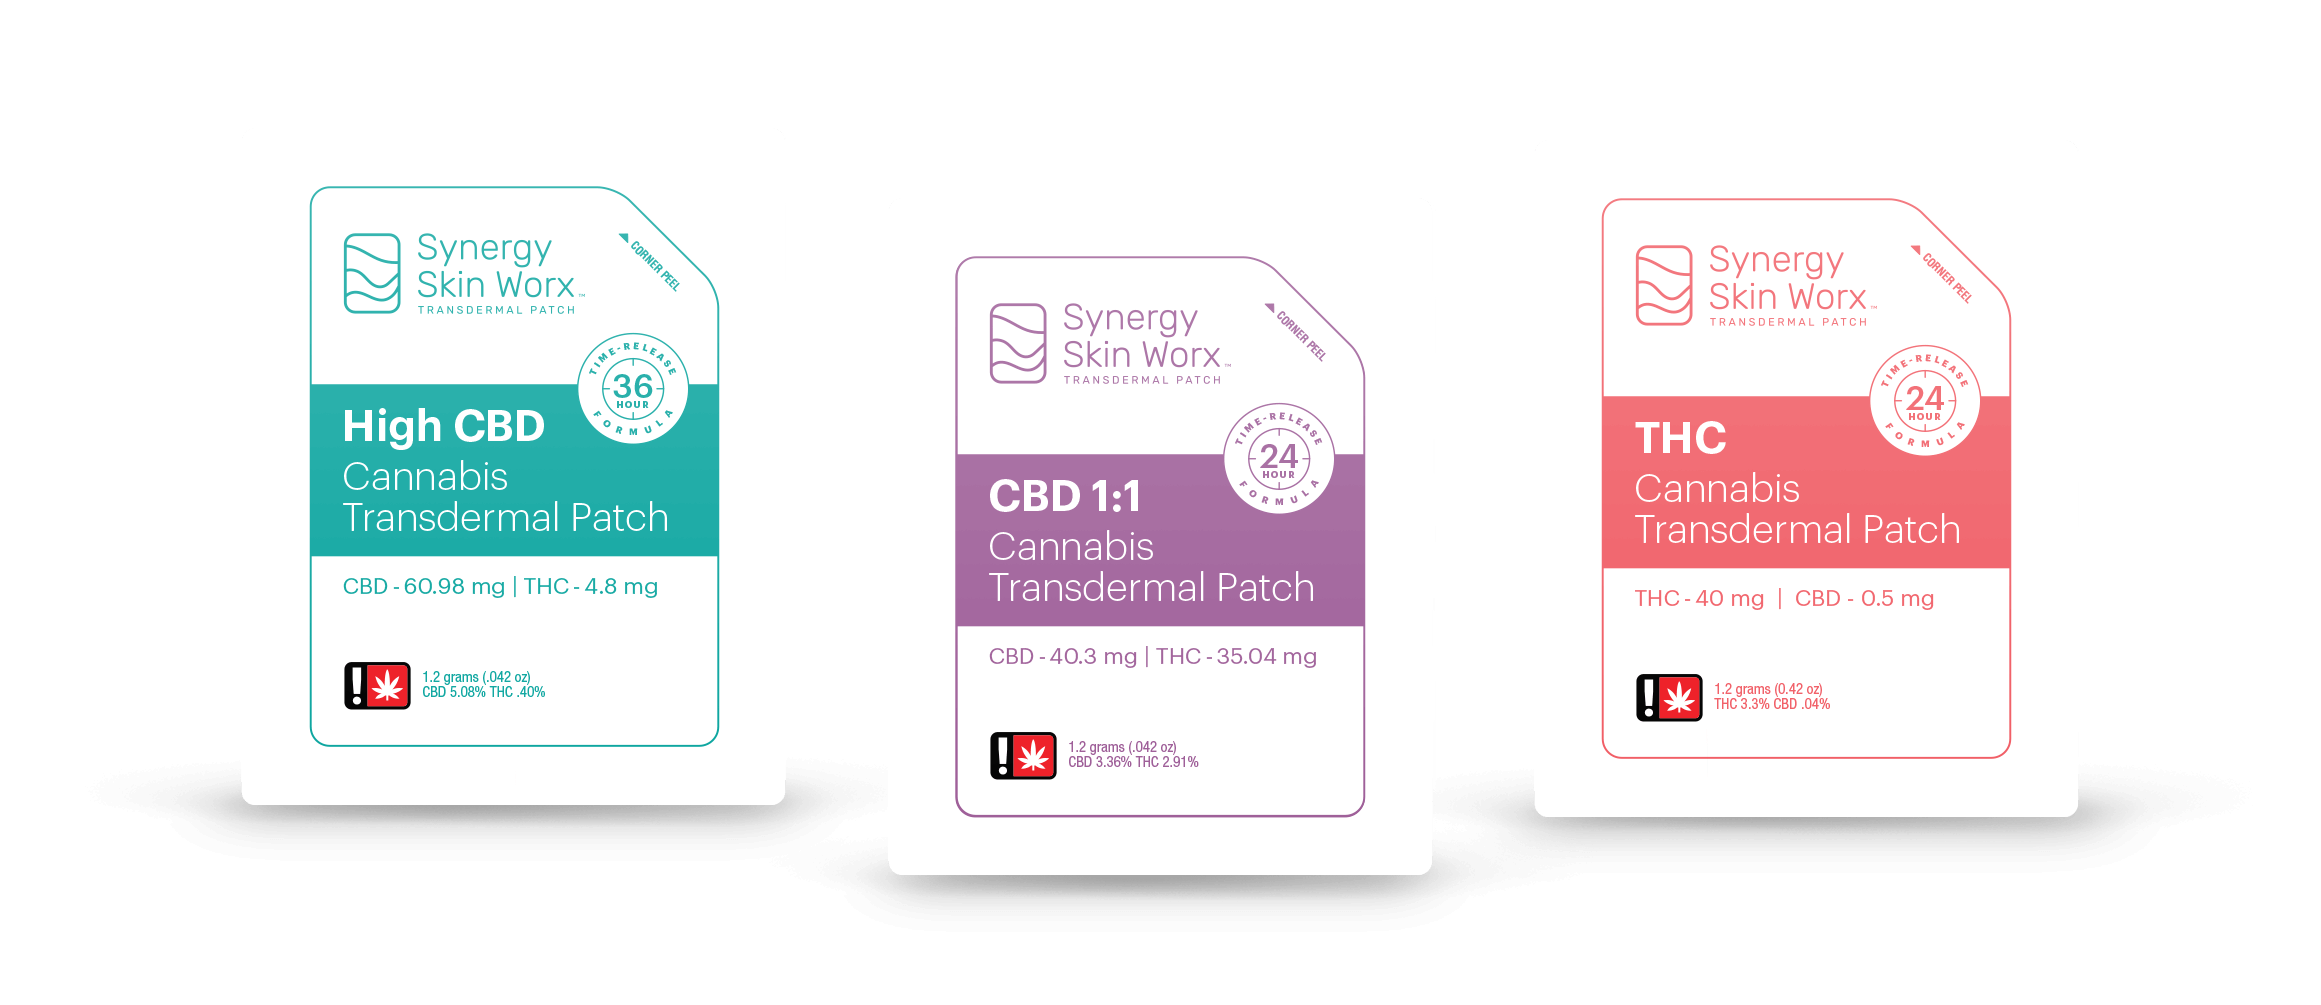 Synergy Skin Worx Cannabis Transdermal Patches